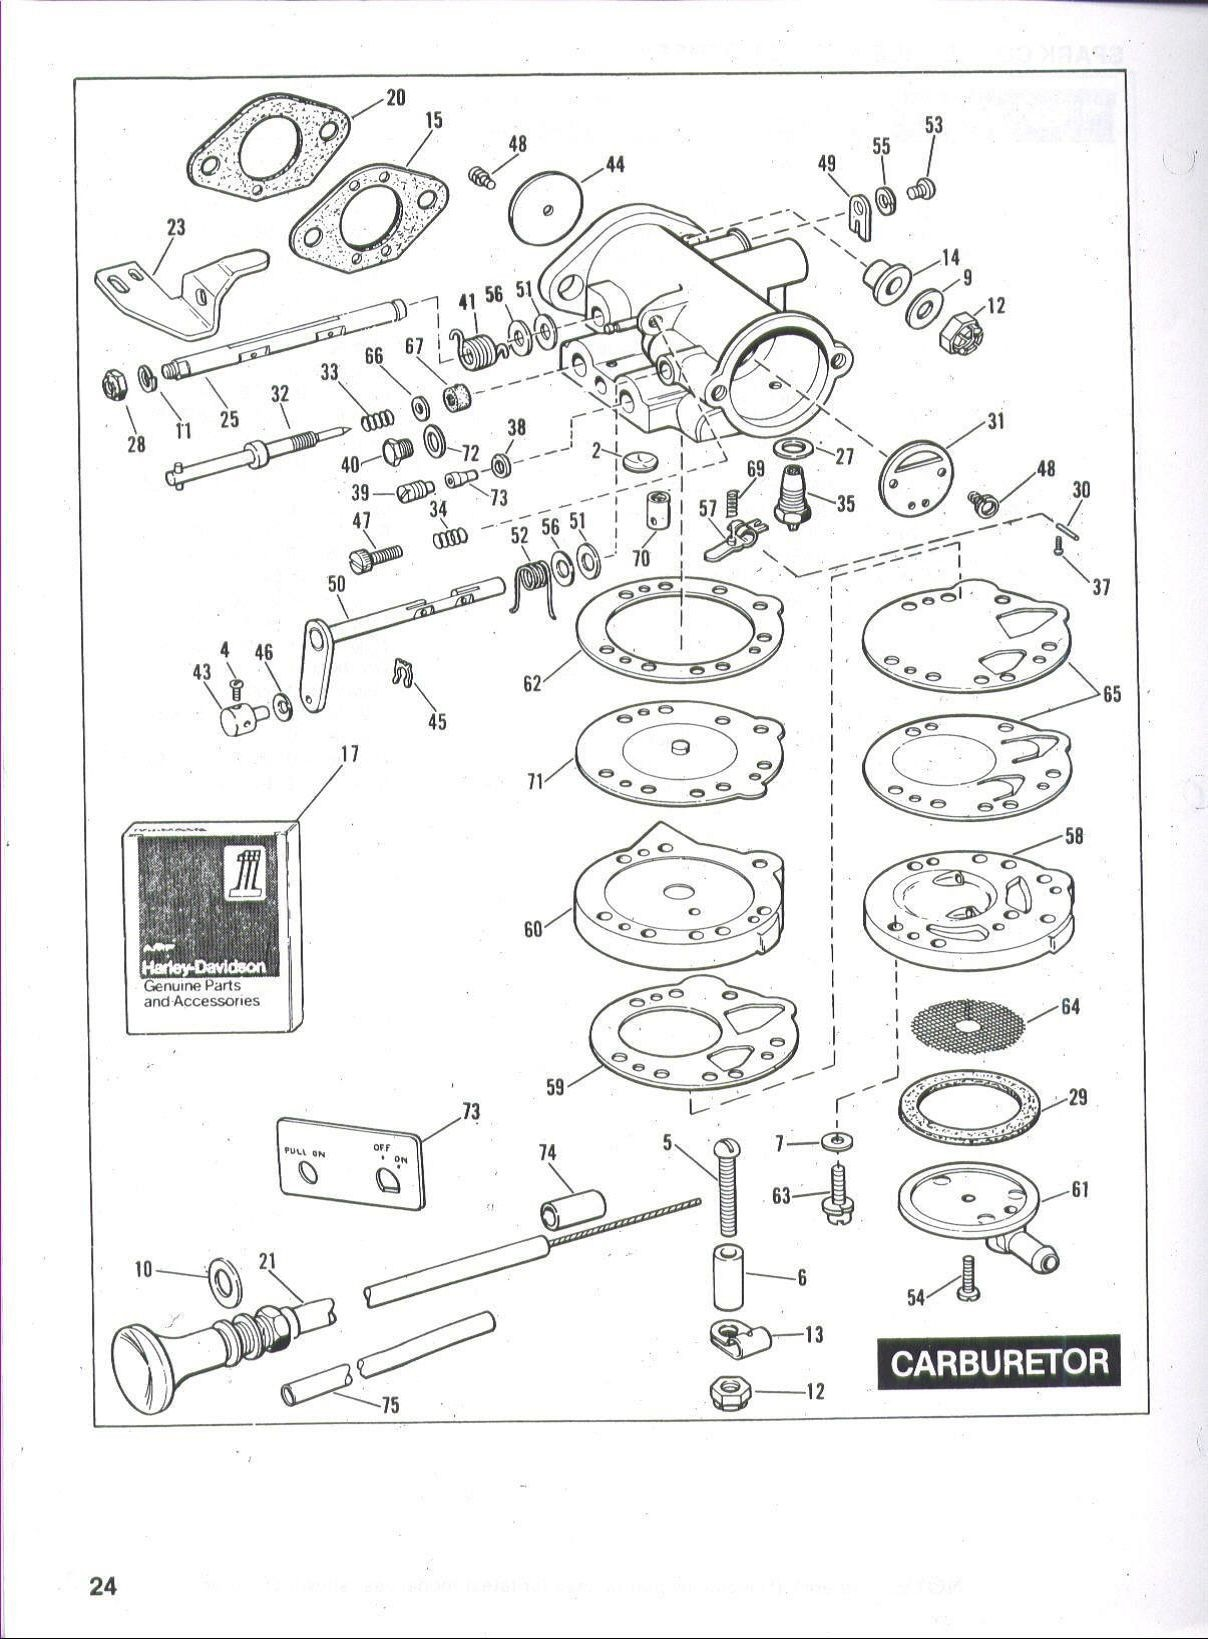 Magnificent Club Car Manual Wire Diagrams Composition - Electrical on yamaha golf cart wheels, yamaha motorcycle wiring diagrams, yamaha golf cart turn signals, golf cart electrical system diagram, yamaha marine part 703-82563-02, yamaha golf cart serial number, yamaha wiring-diagram g29, yamaha g1 golf cart, yamaha golf cart parts, yamaha g2 golf cart, yamaha ydre wiring-diagram, yamaha electric golf cart, club car wiring diagram, yamaha parts diagram, yamaha golf cart generator, yamaha golf cars, yamaha g9 wiring-diagram, yamaha xs650 wiring-diagram, yamaha g9 golf cart, yamaha golf cart repair manual,